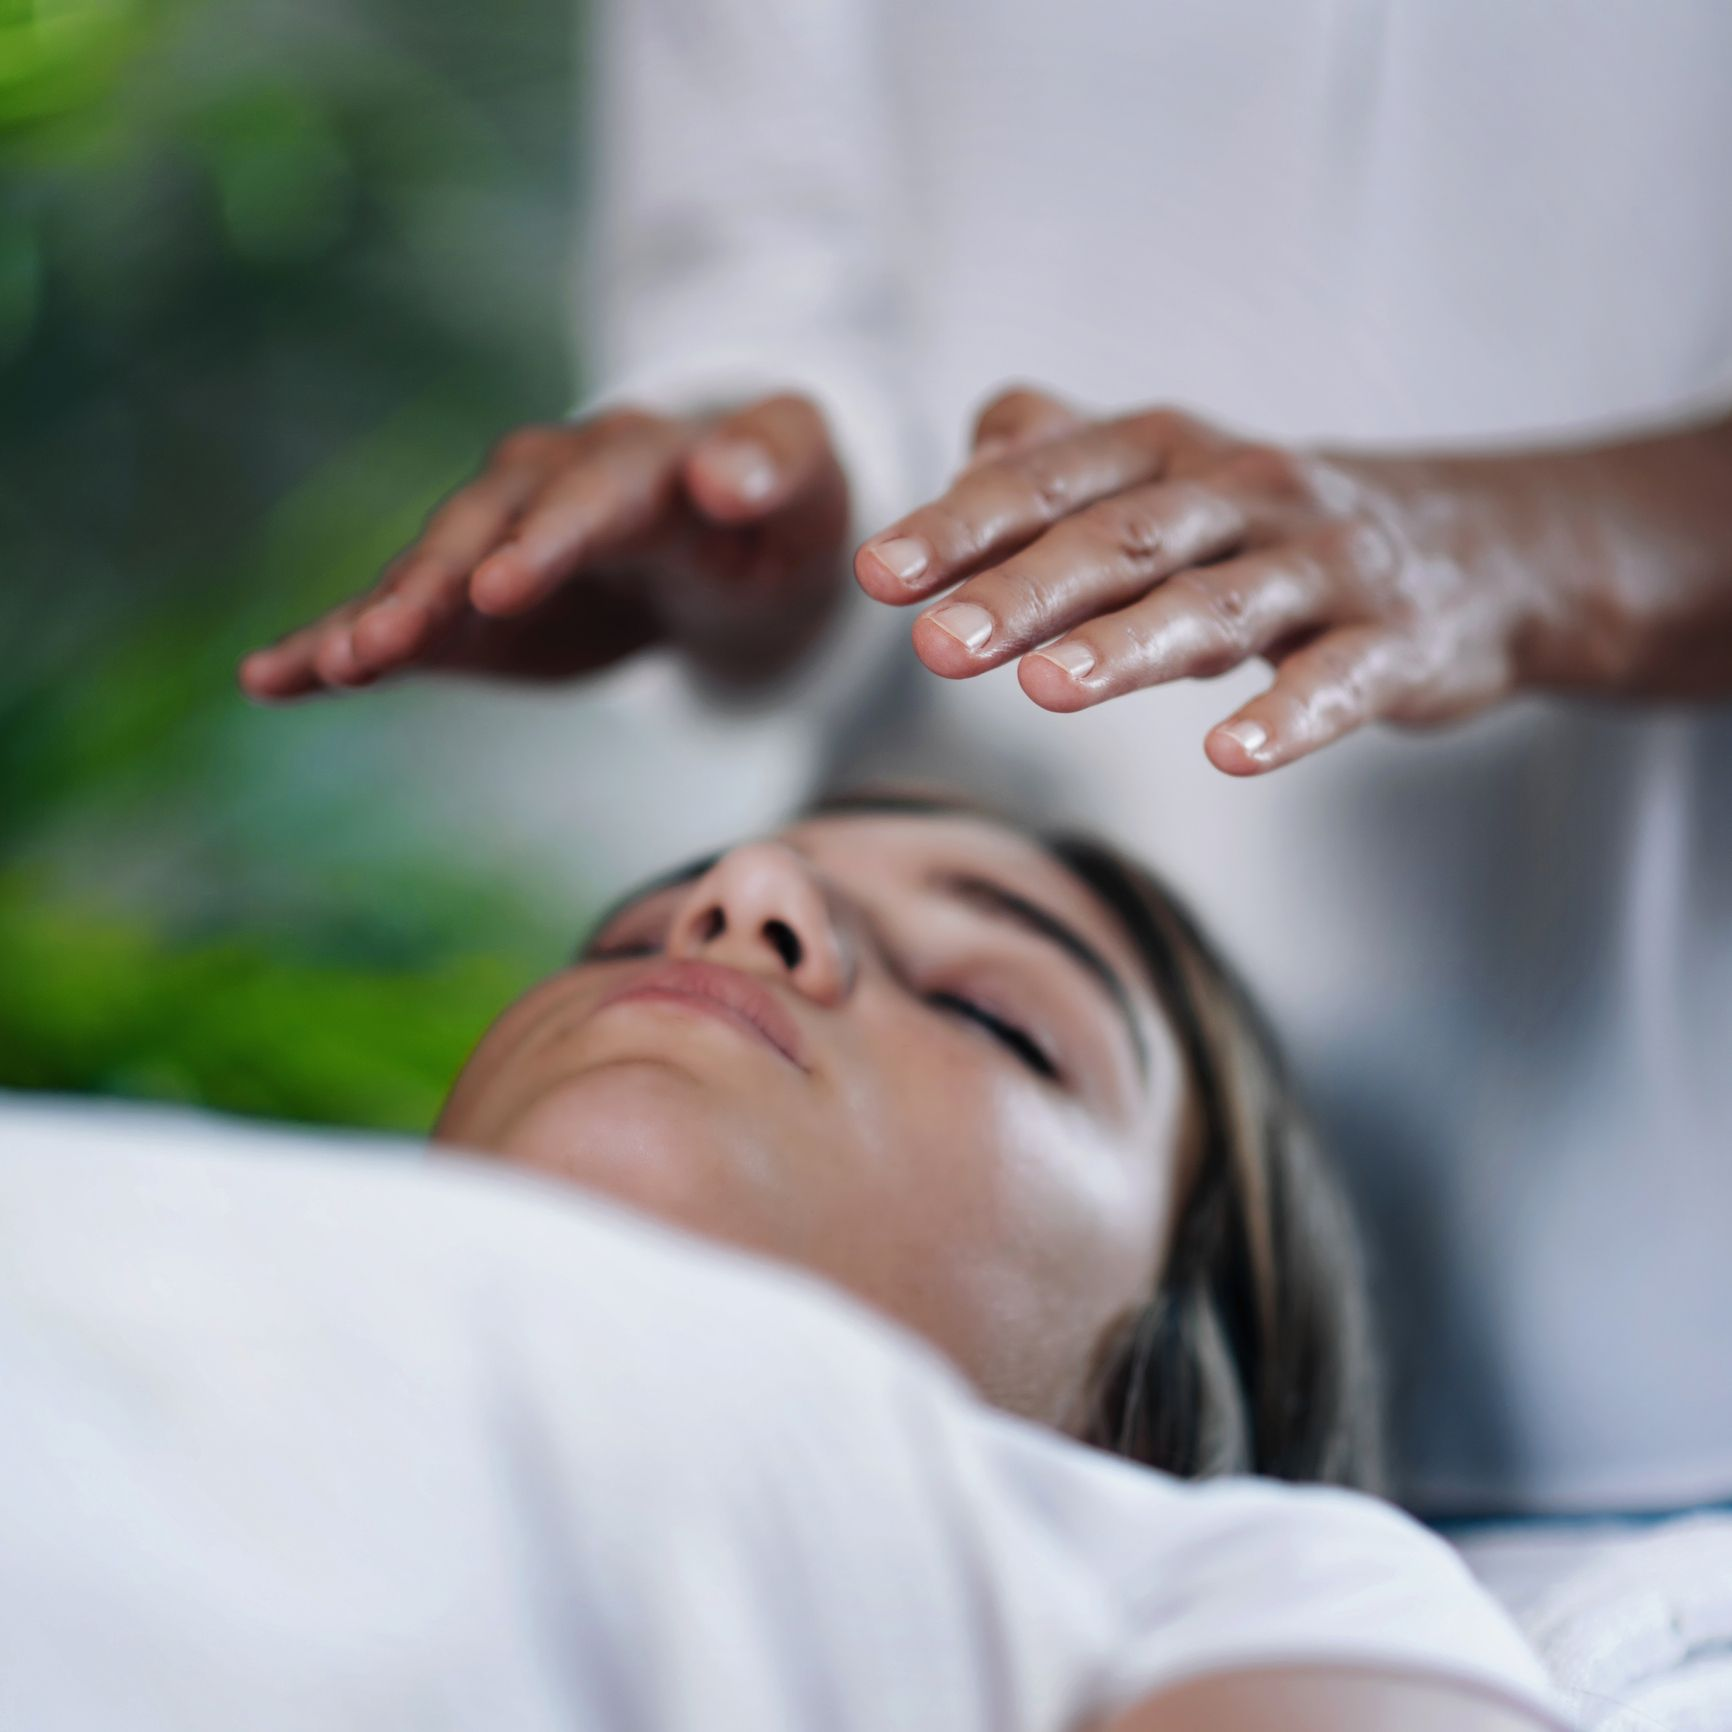 Reiki healing: how does it work and what are the benefits?